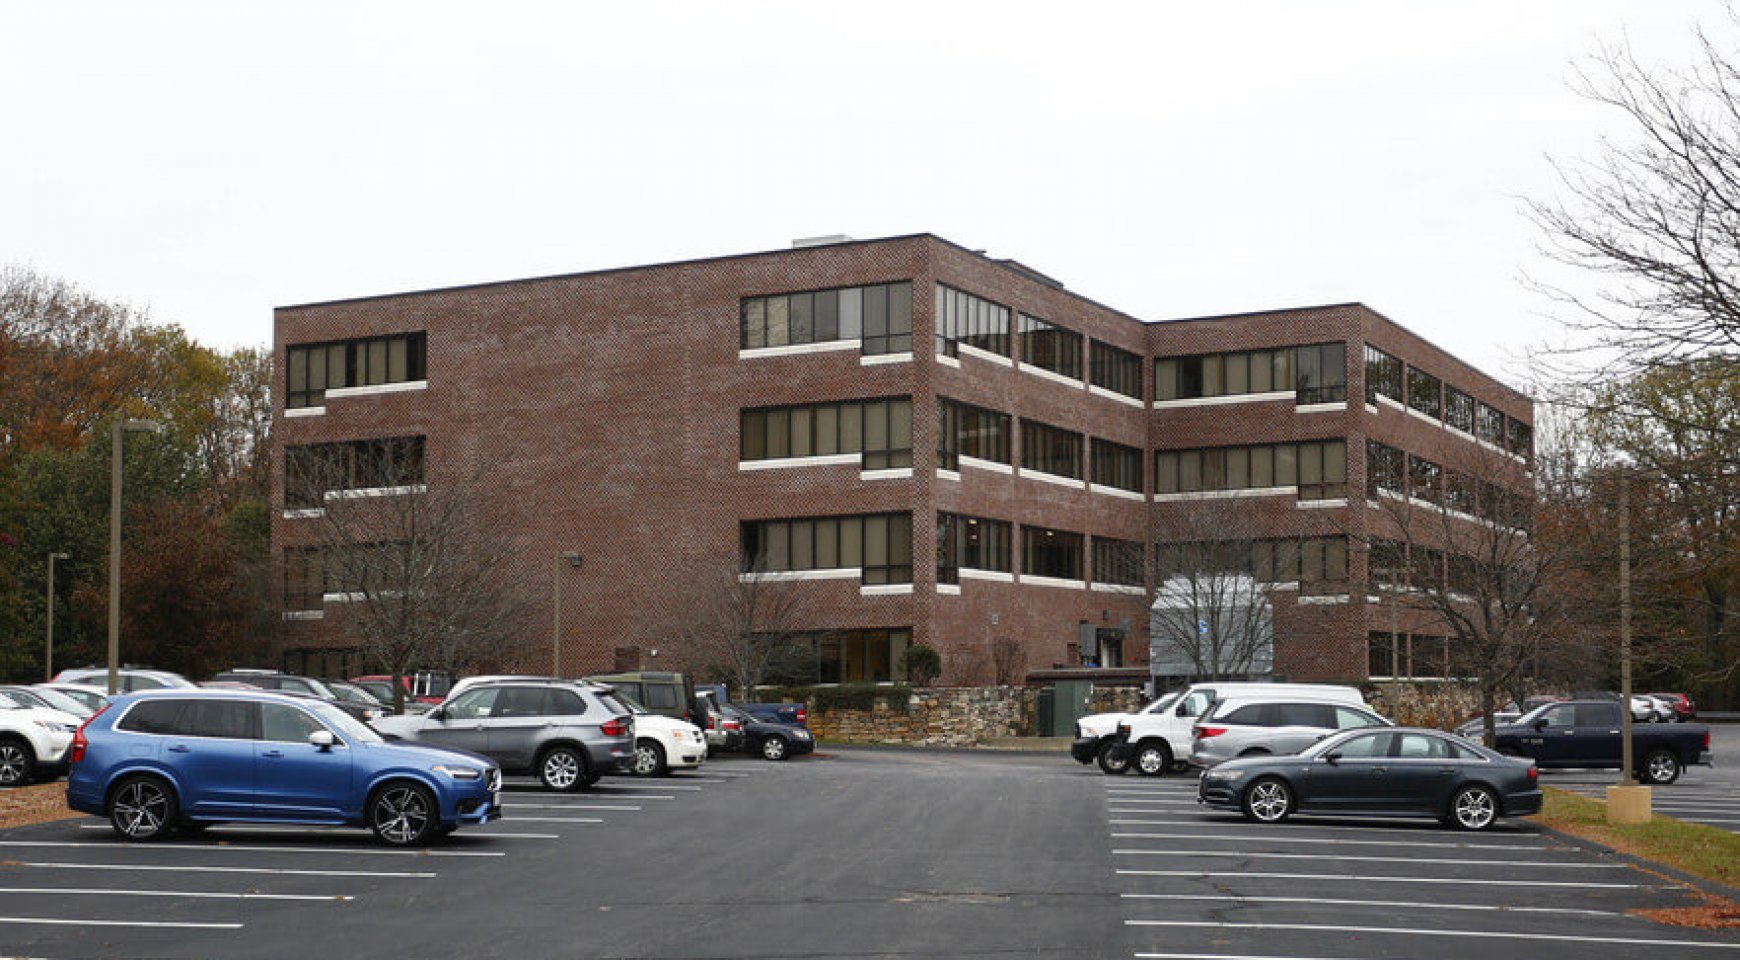 Commercial Office Space Available At 2200 W Park Dr